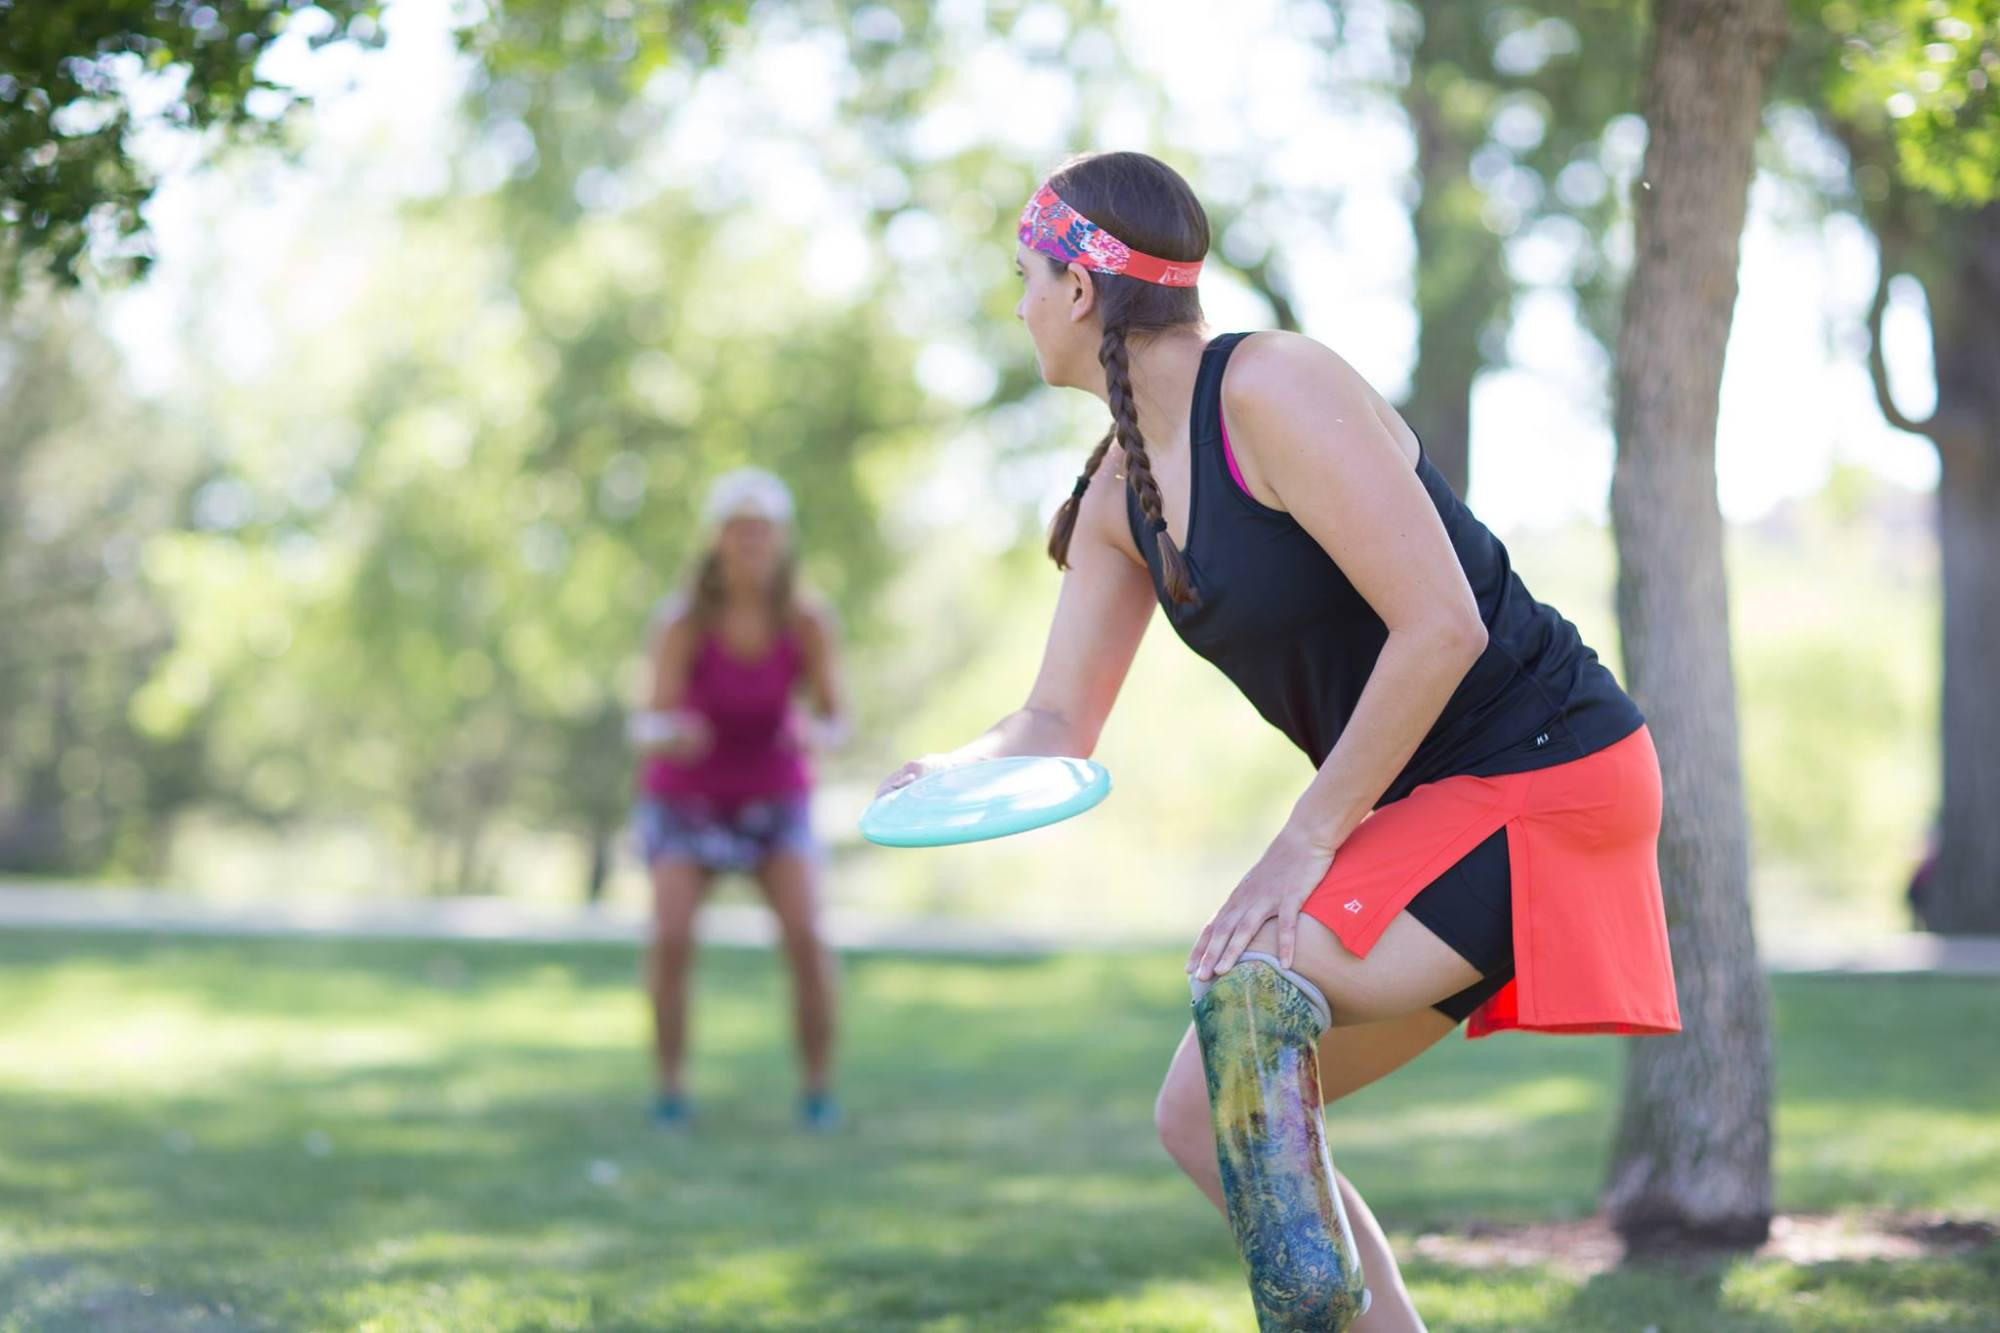 Emily during Skirt Sports modeling shoot, throwing frisbee to another model (Jenn) who is blurry in the background. photo credit: Kim Cook